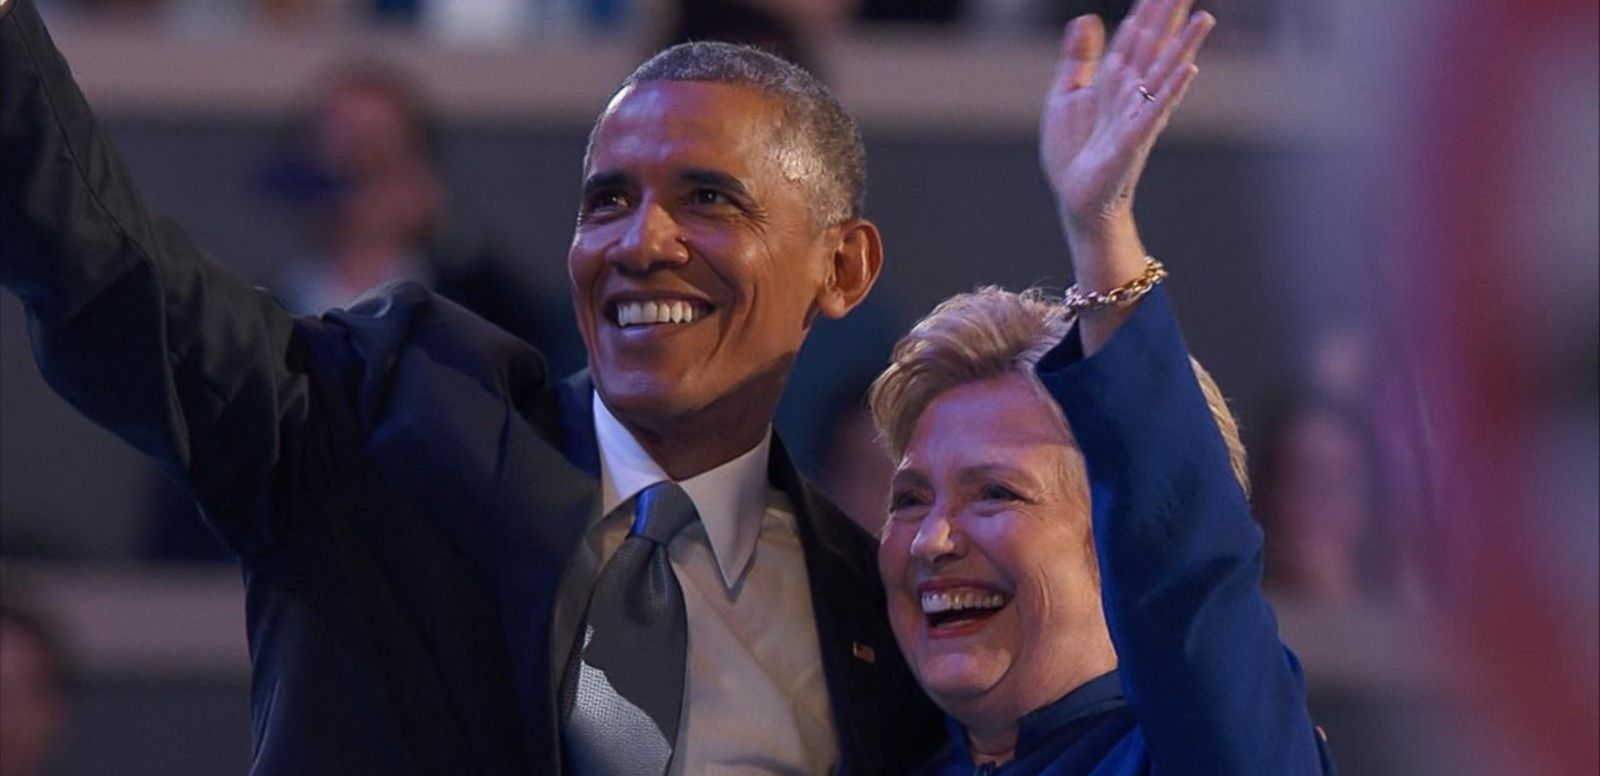 VIDEO: Hillary Clinton Joins President Obama on Stage at the DNC